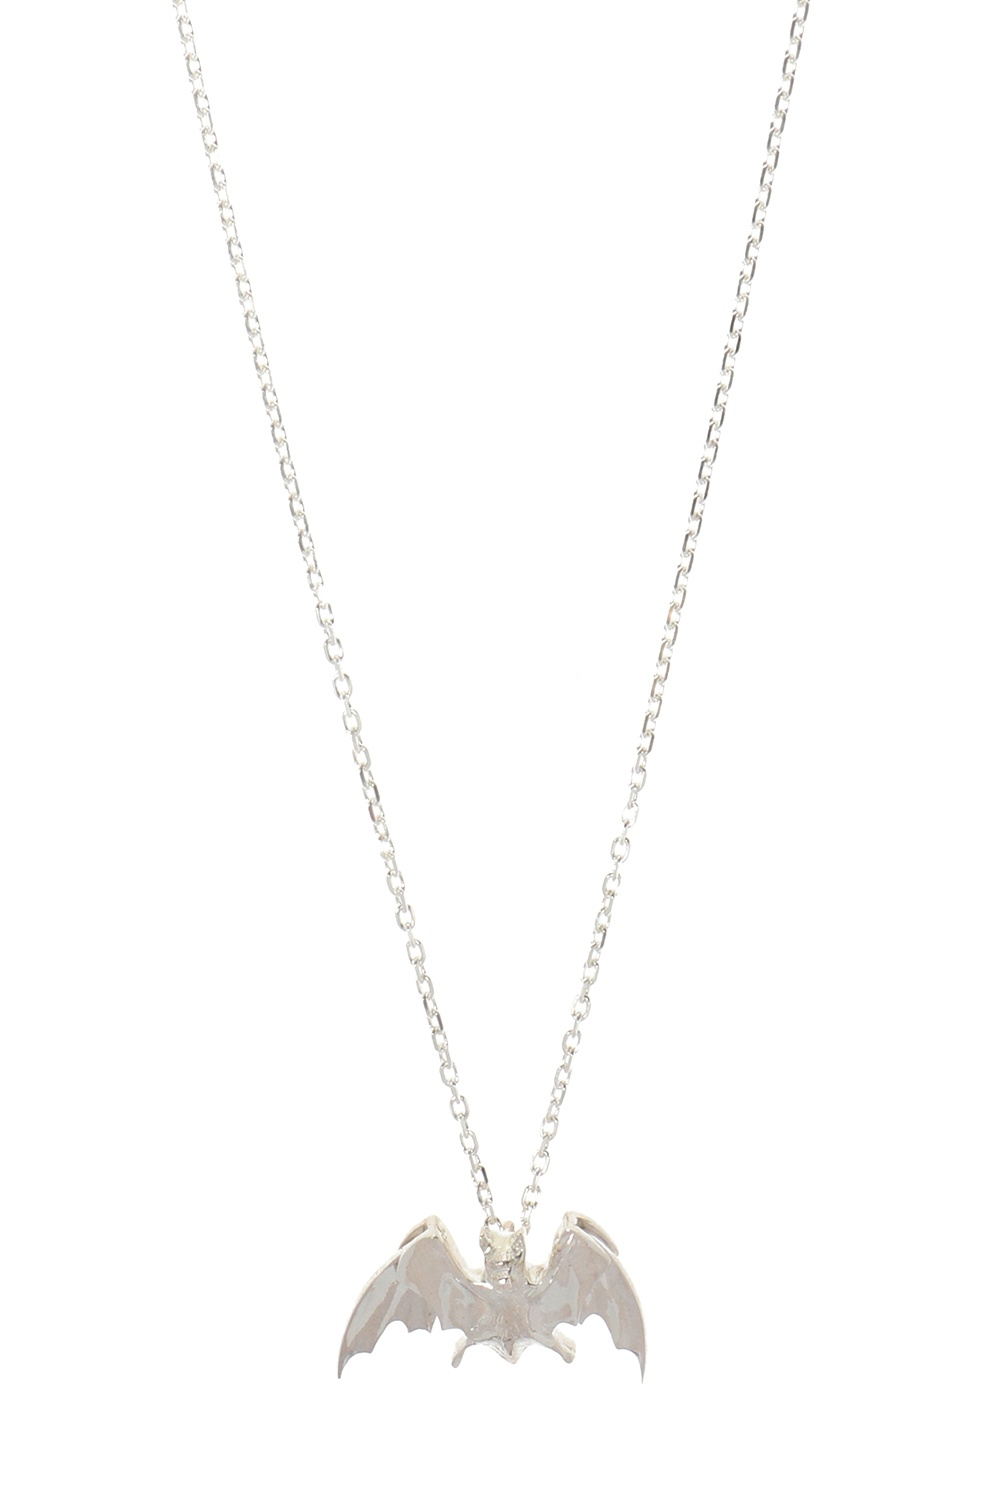 Undercover Animal motif necklace